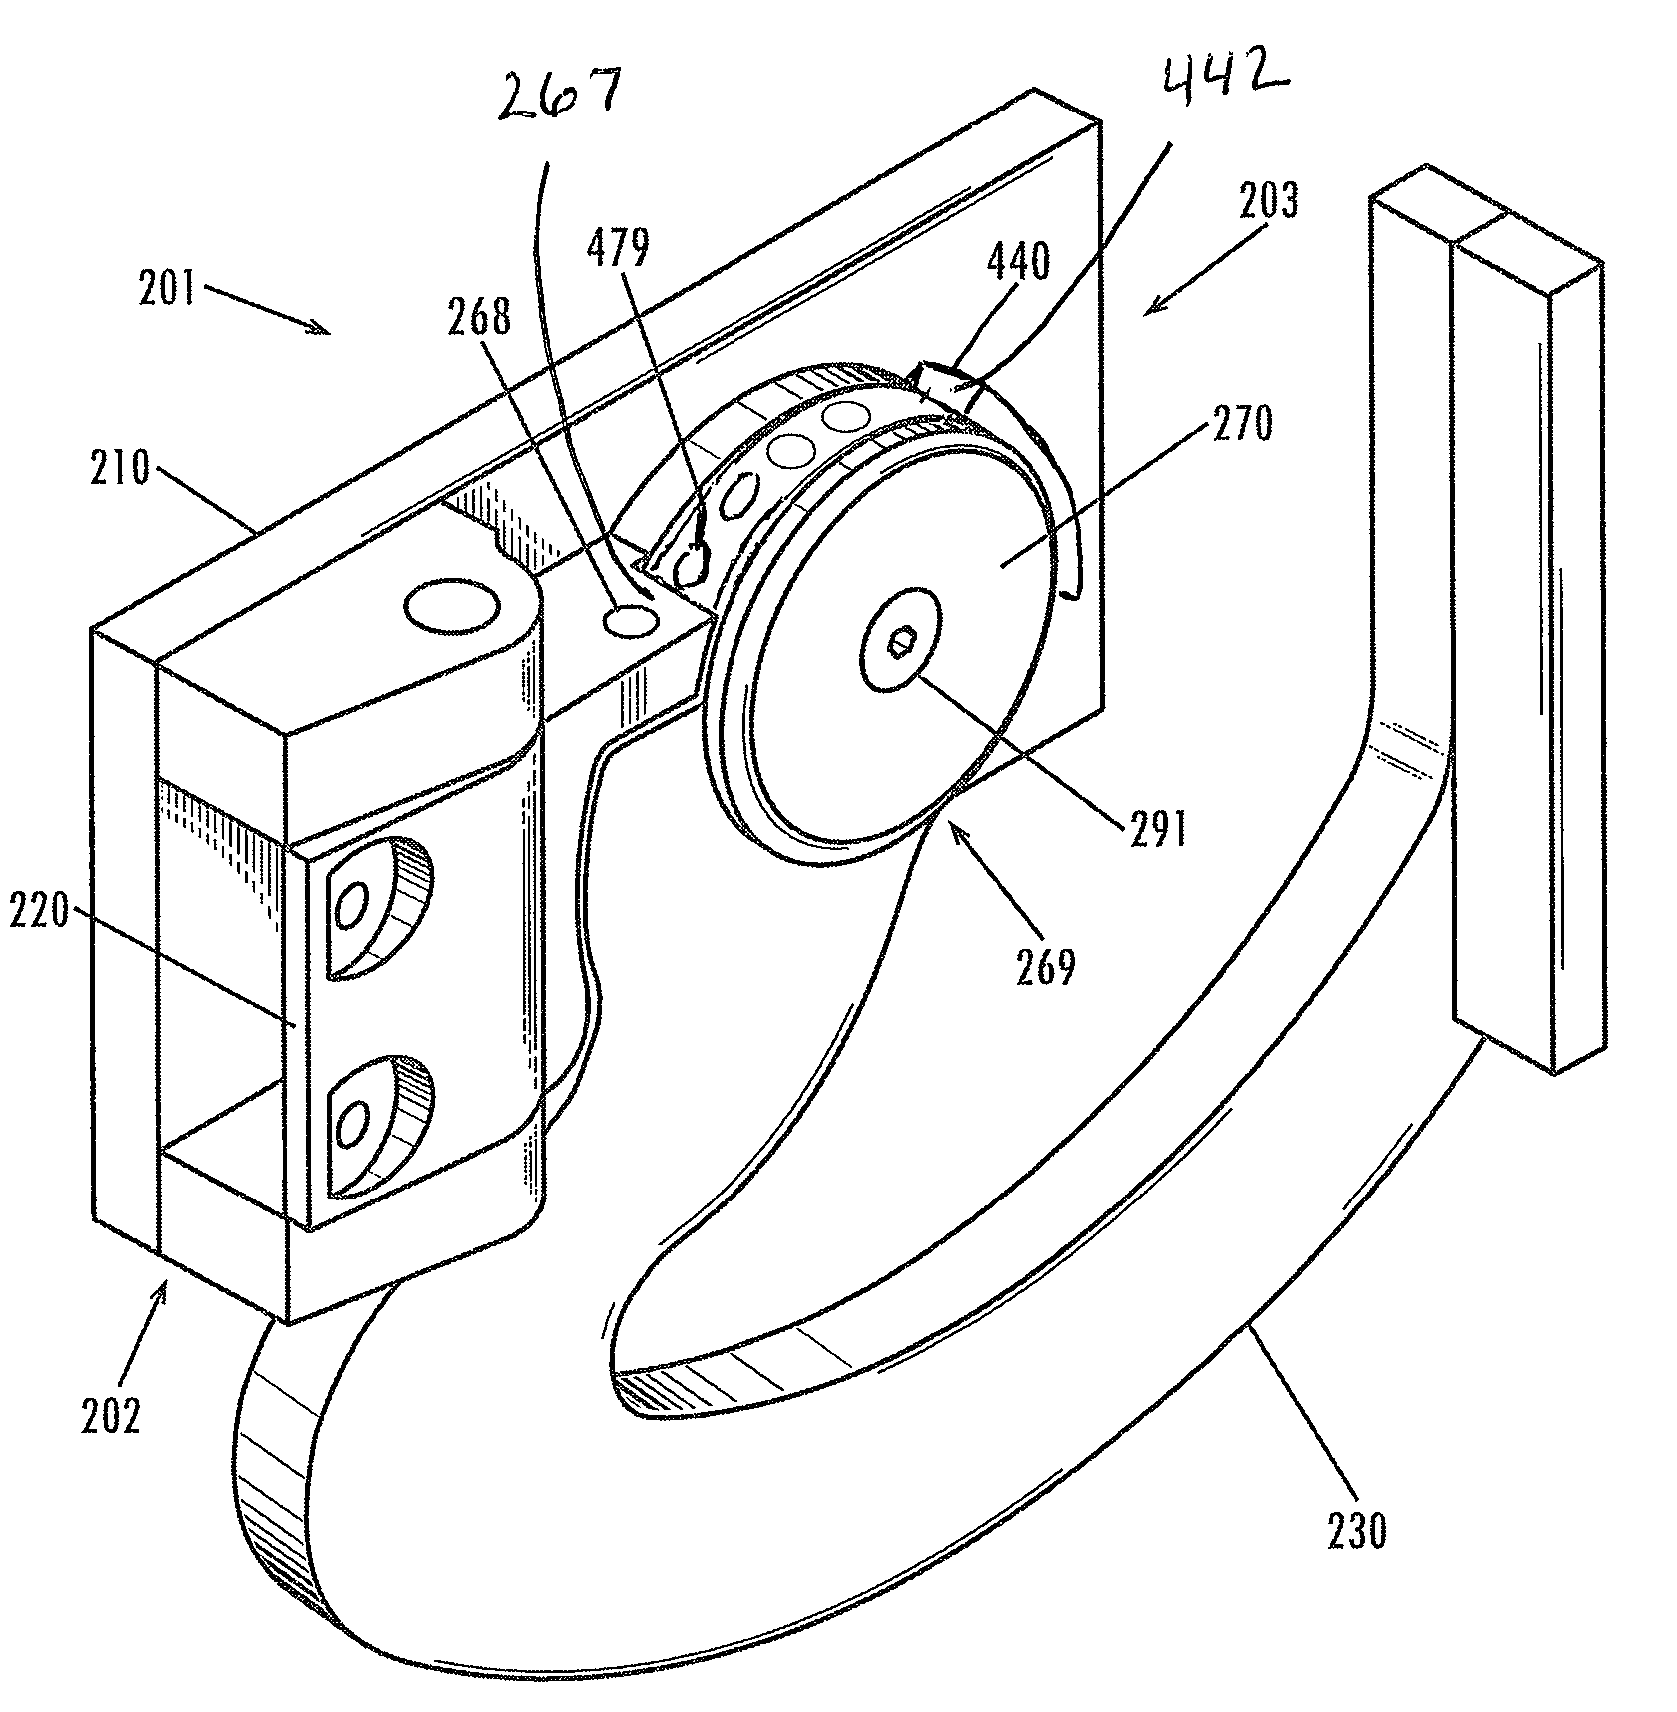 Patent US7779510 - Multi-axis door hinge - Google Patents